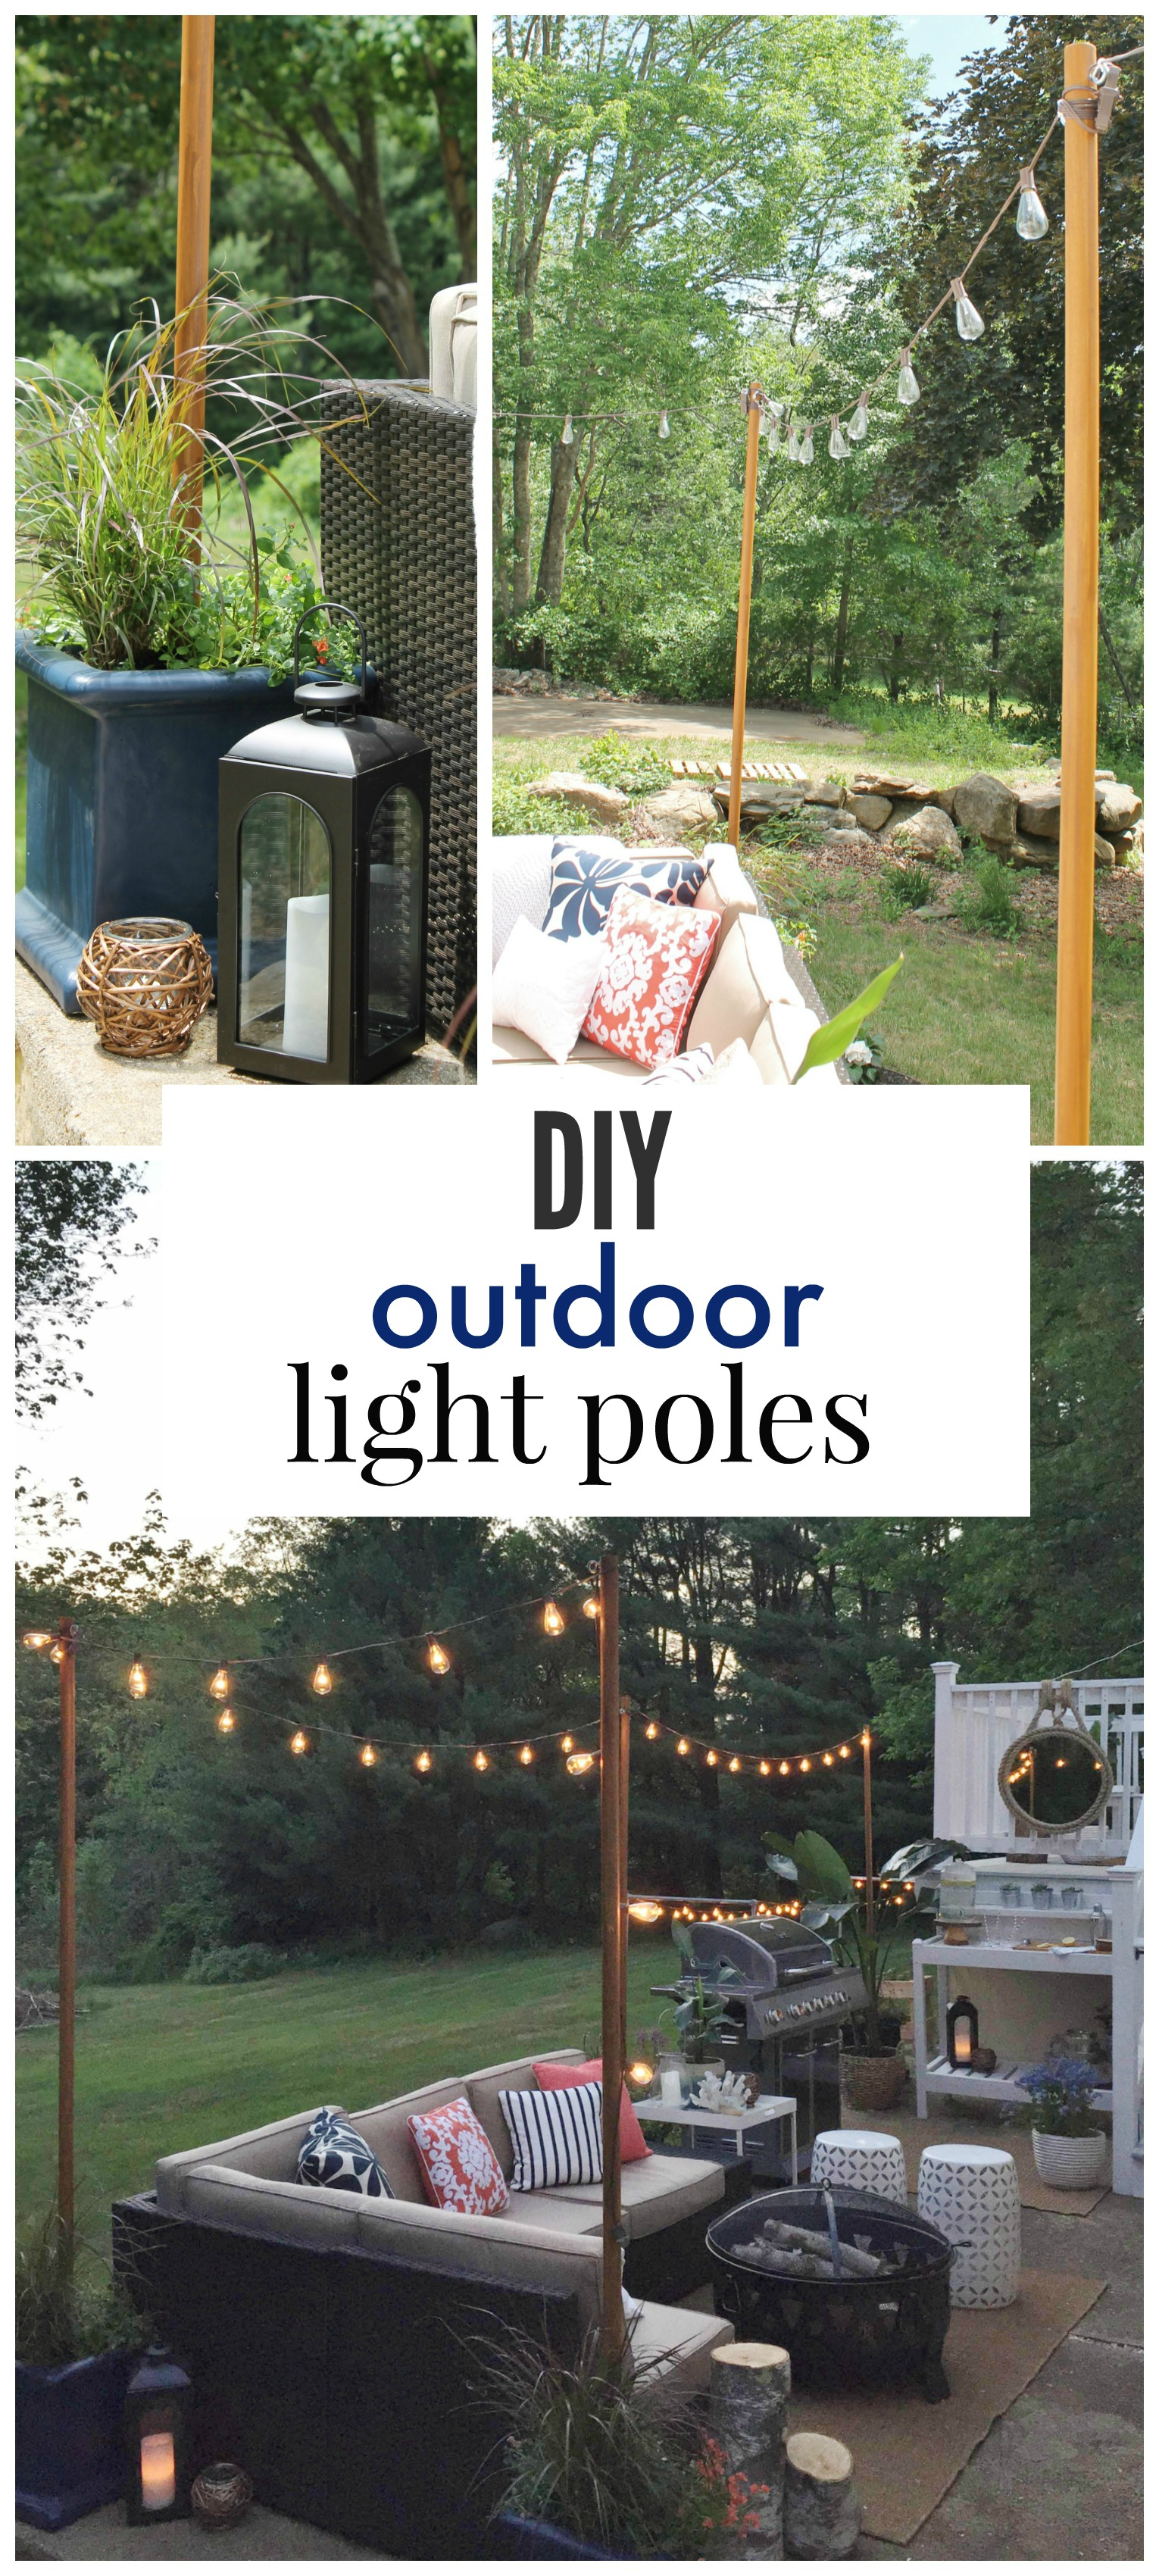 Diy outdoor light poles city farmhouse - Practical ideas to decorate front yards in the city ...